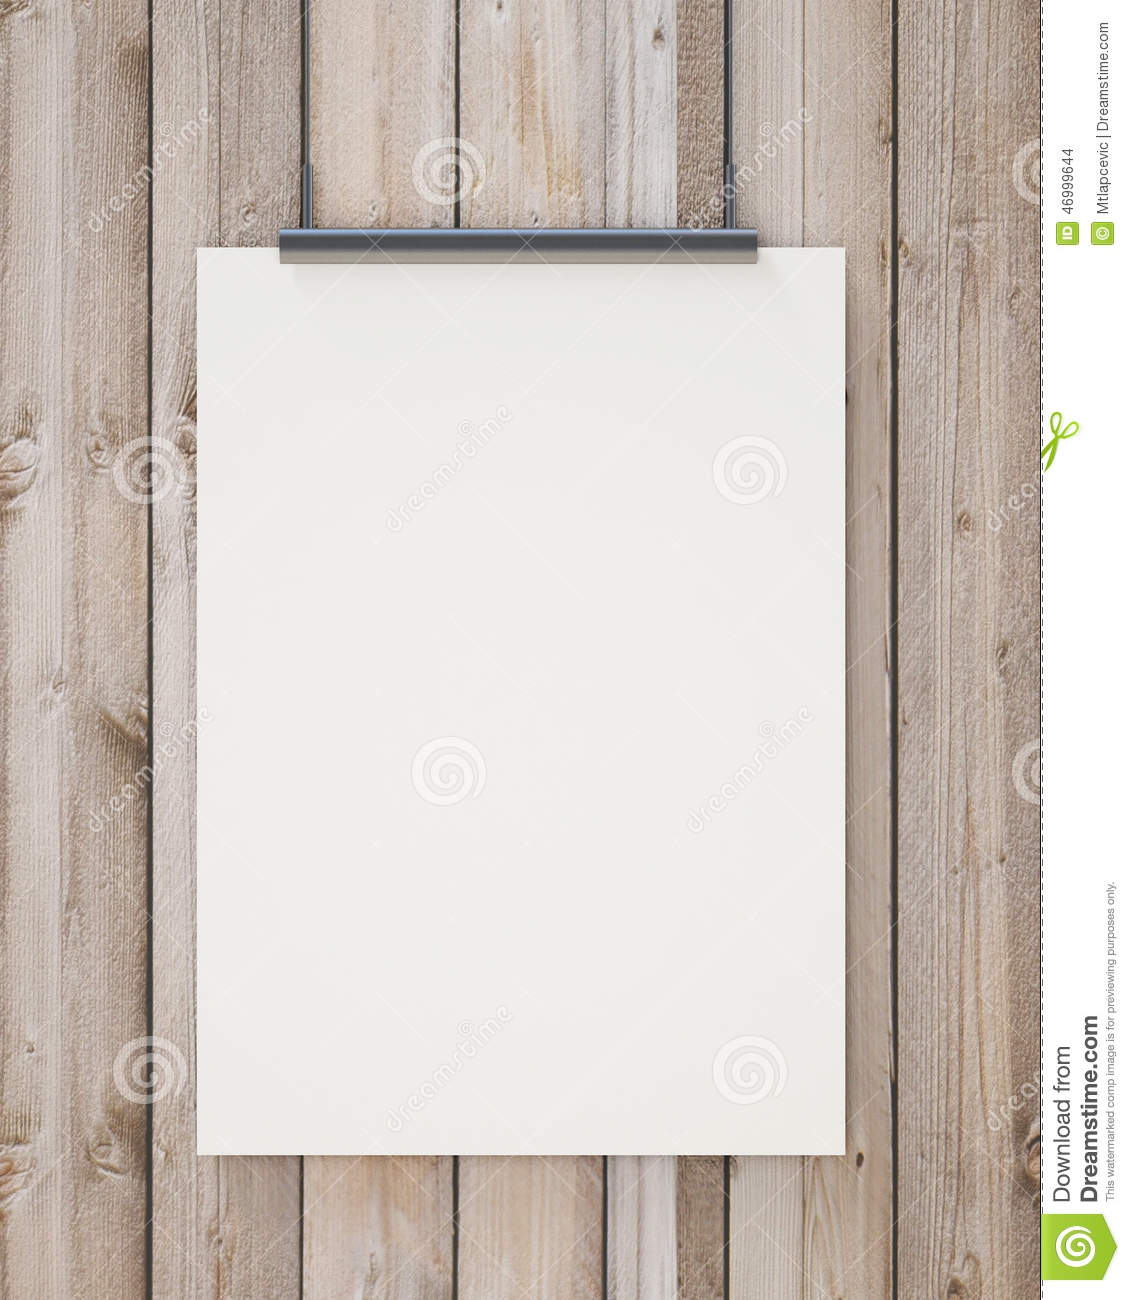 Nock up blank white hanging poster on vertical wooden planks wall, background